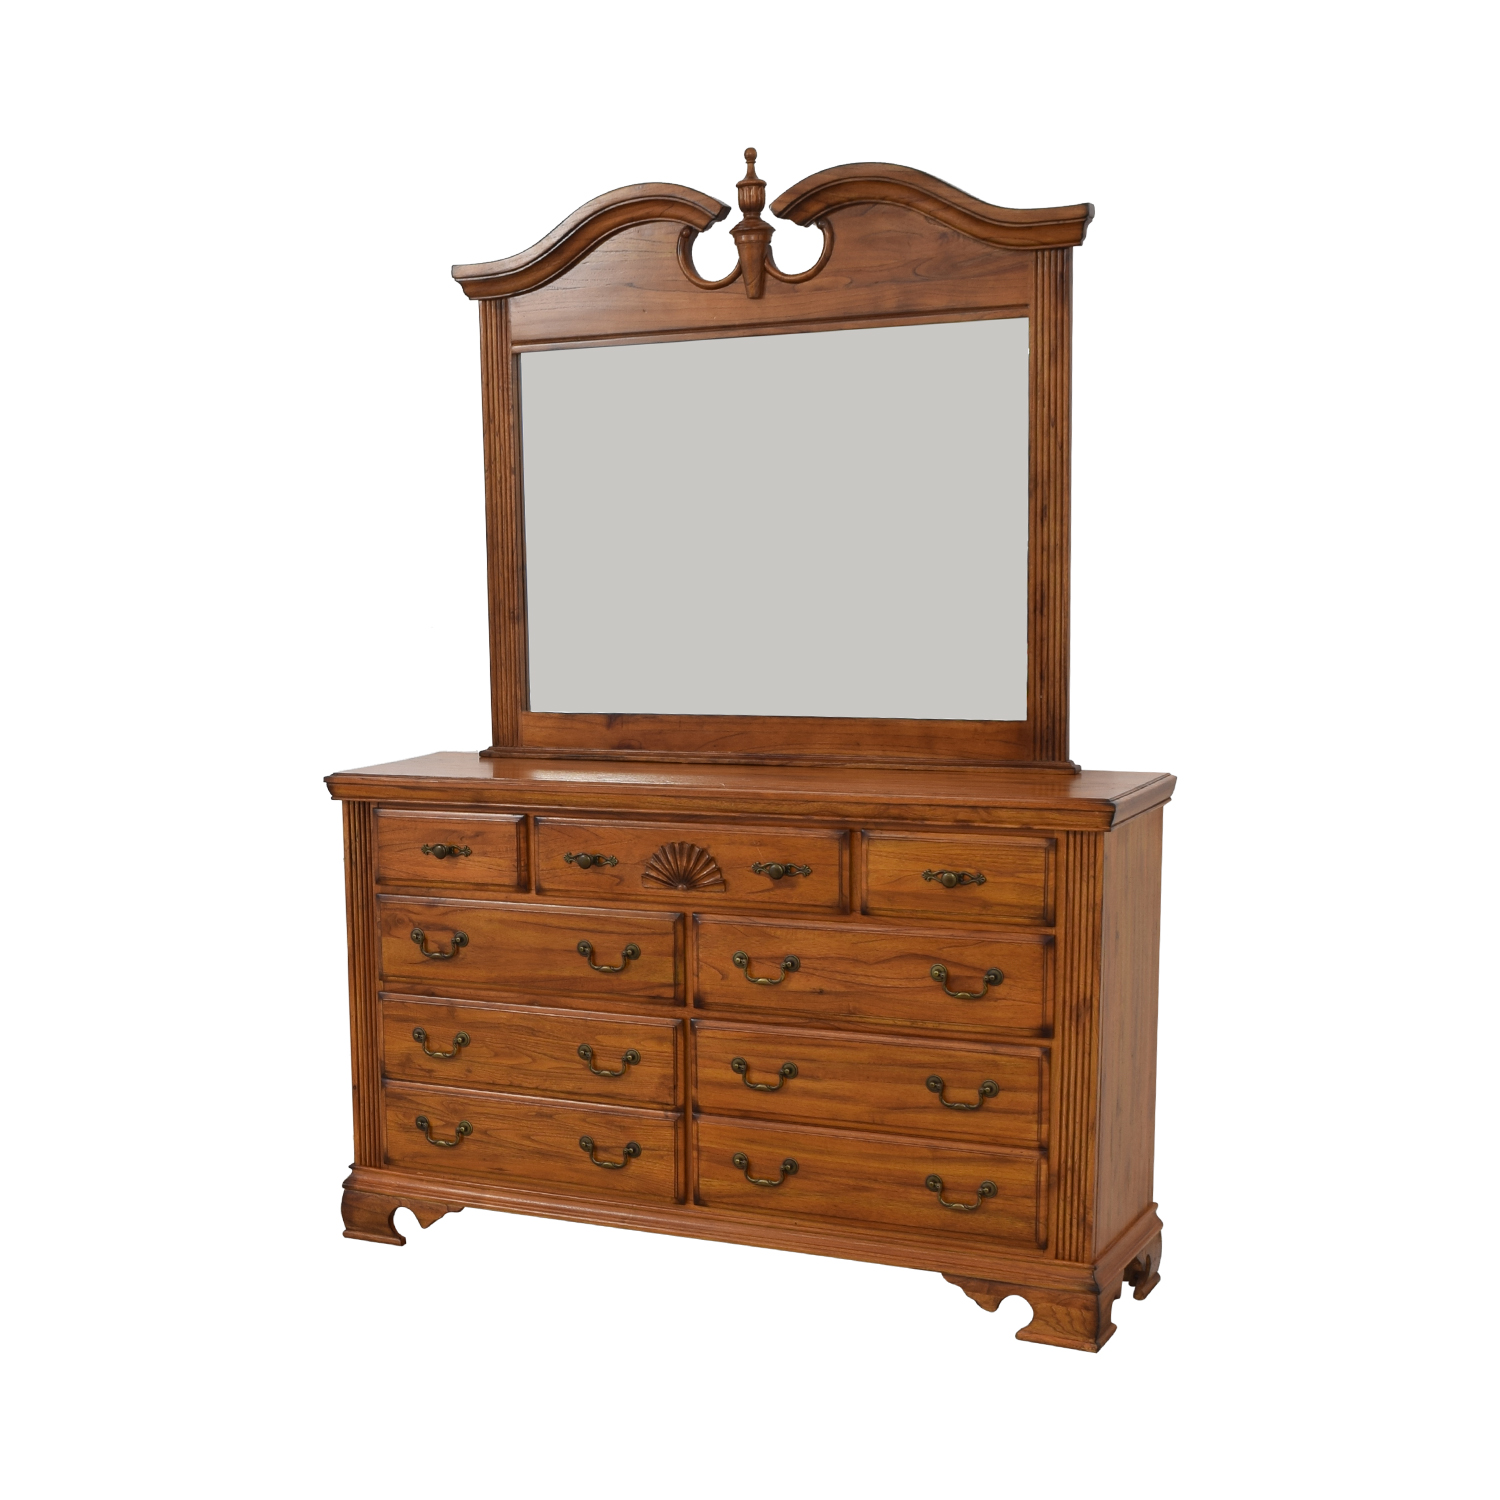 shop Millenia USA Millenia USA Seven Drawer Dresser with Mirror online